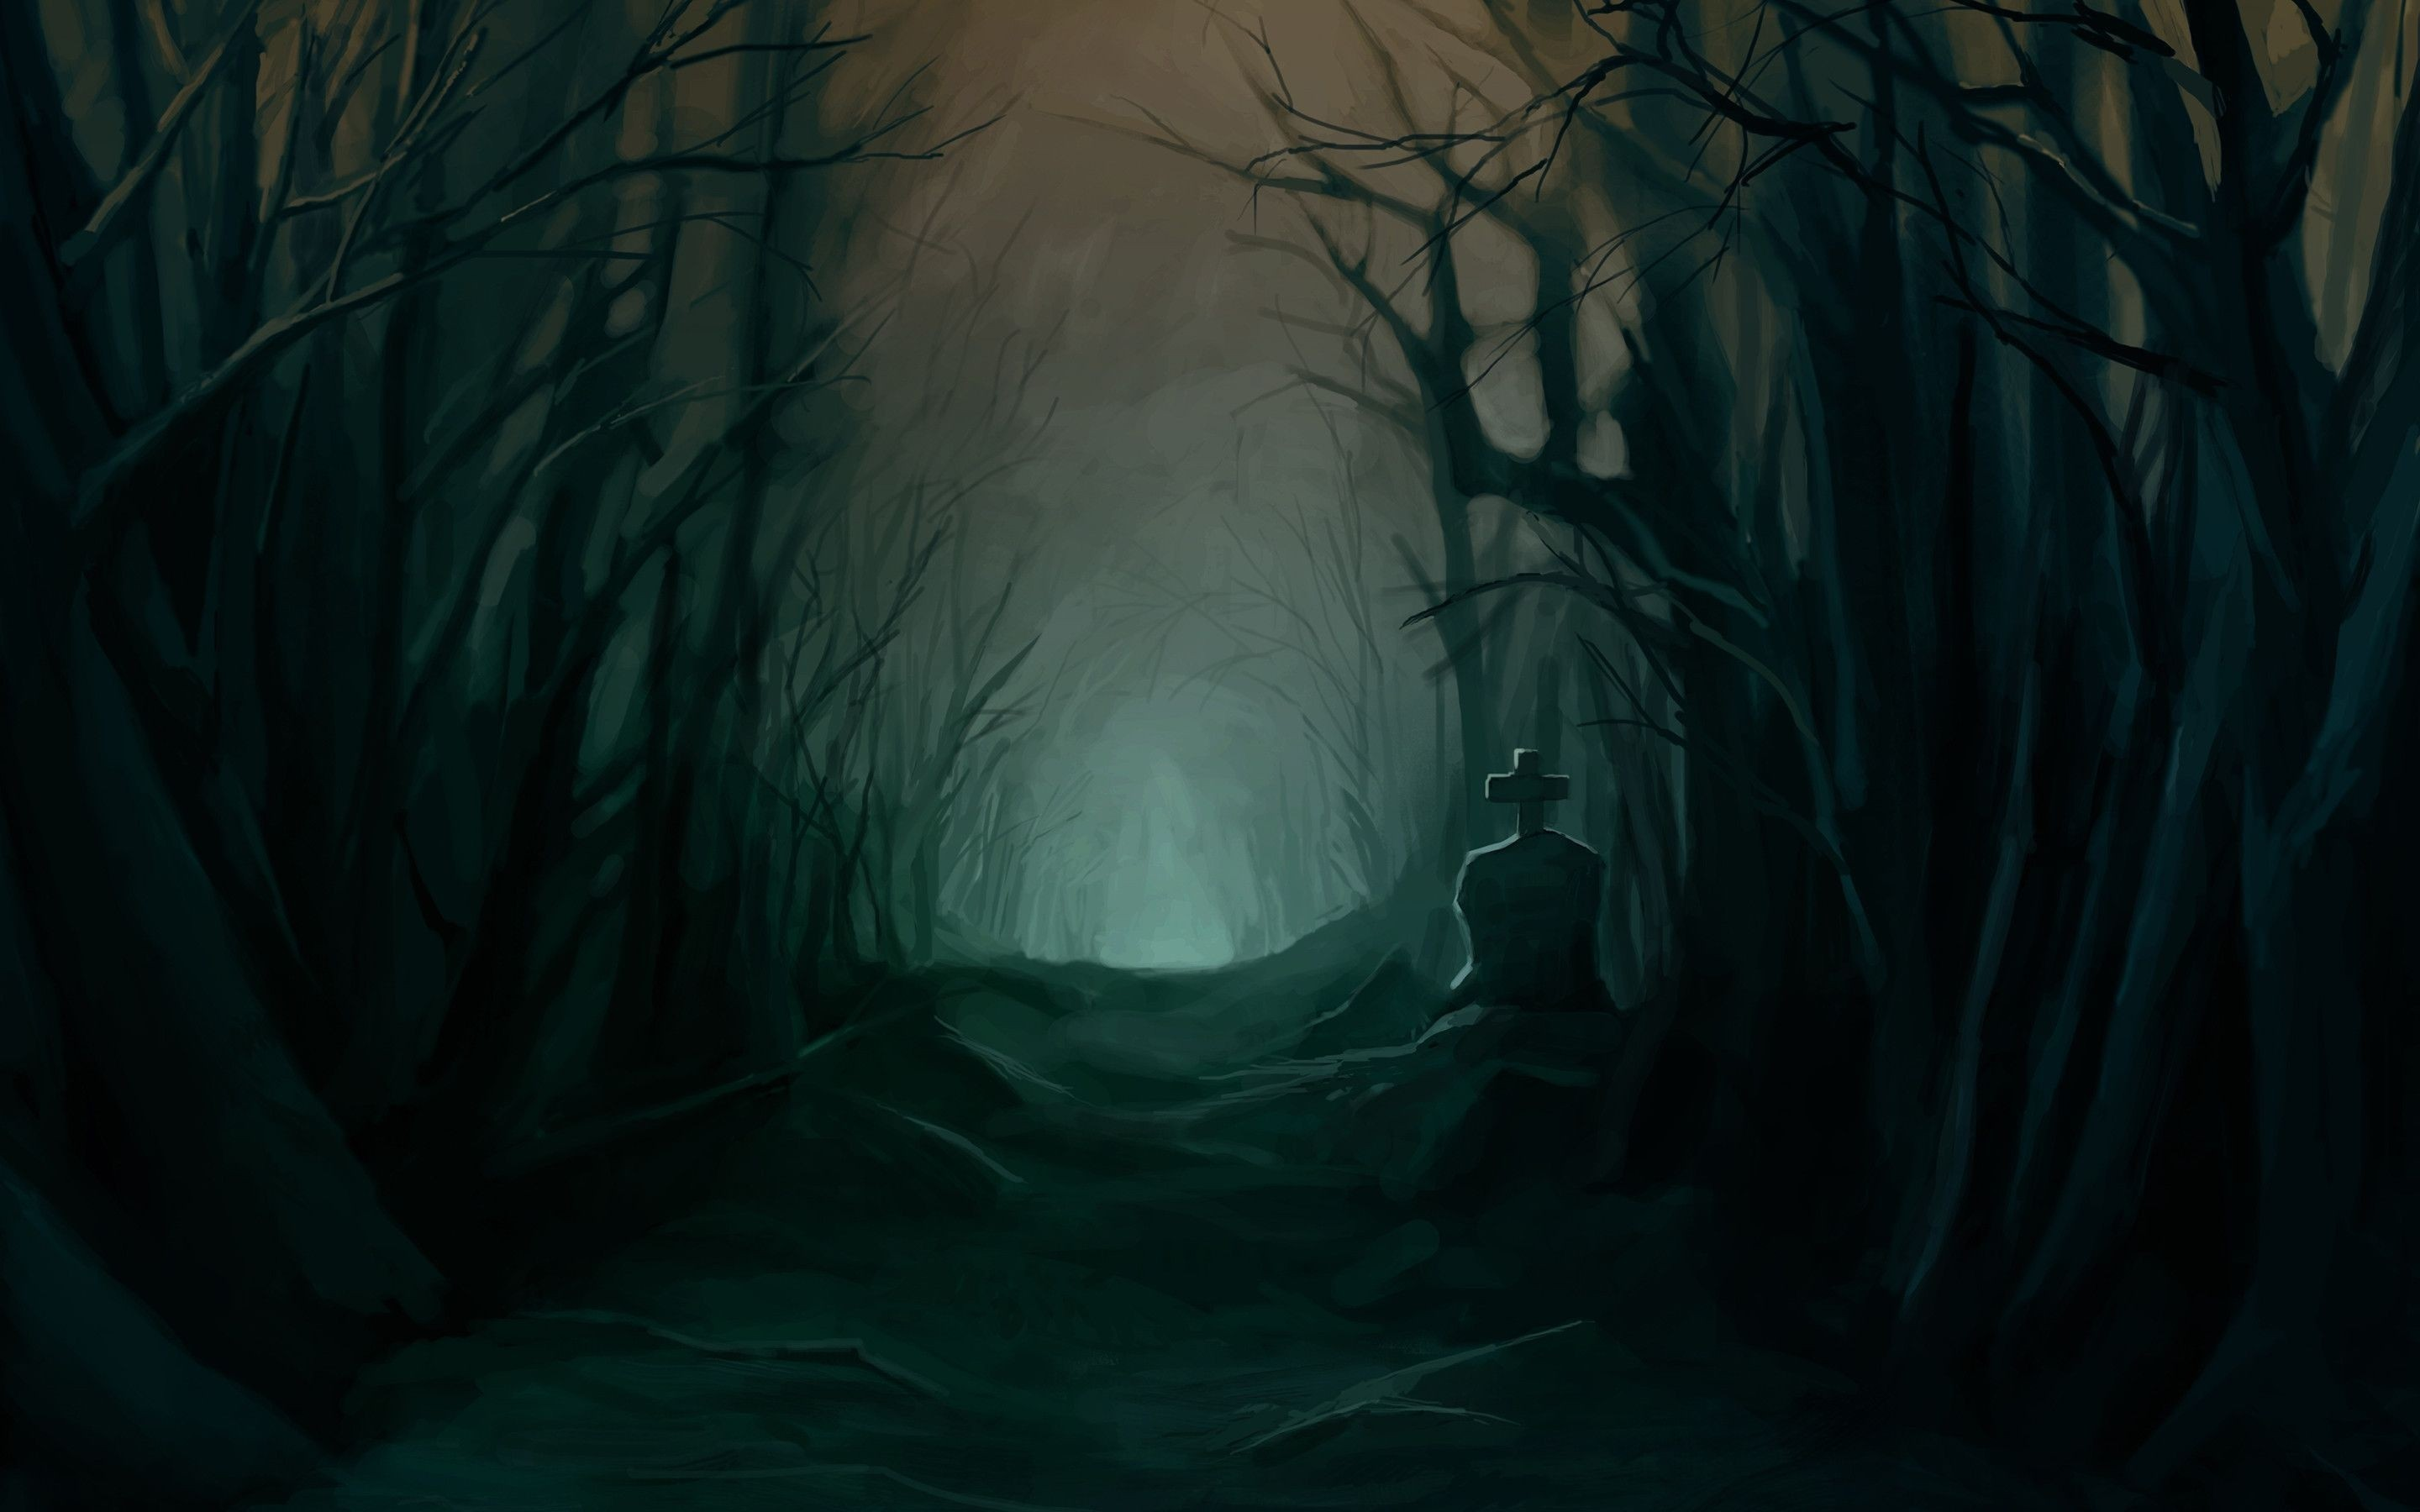 Dark Scary Forest Wallpaper (64+ images).